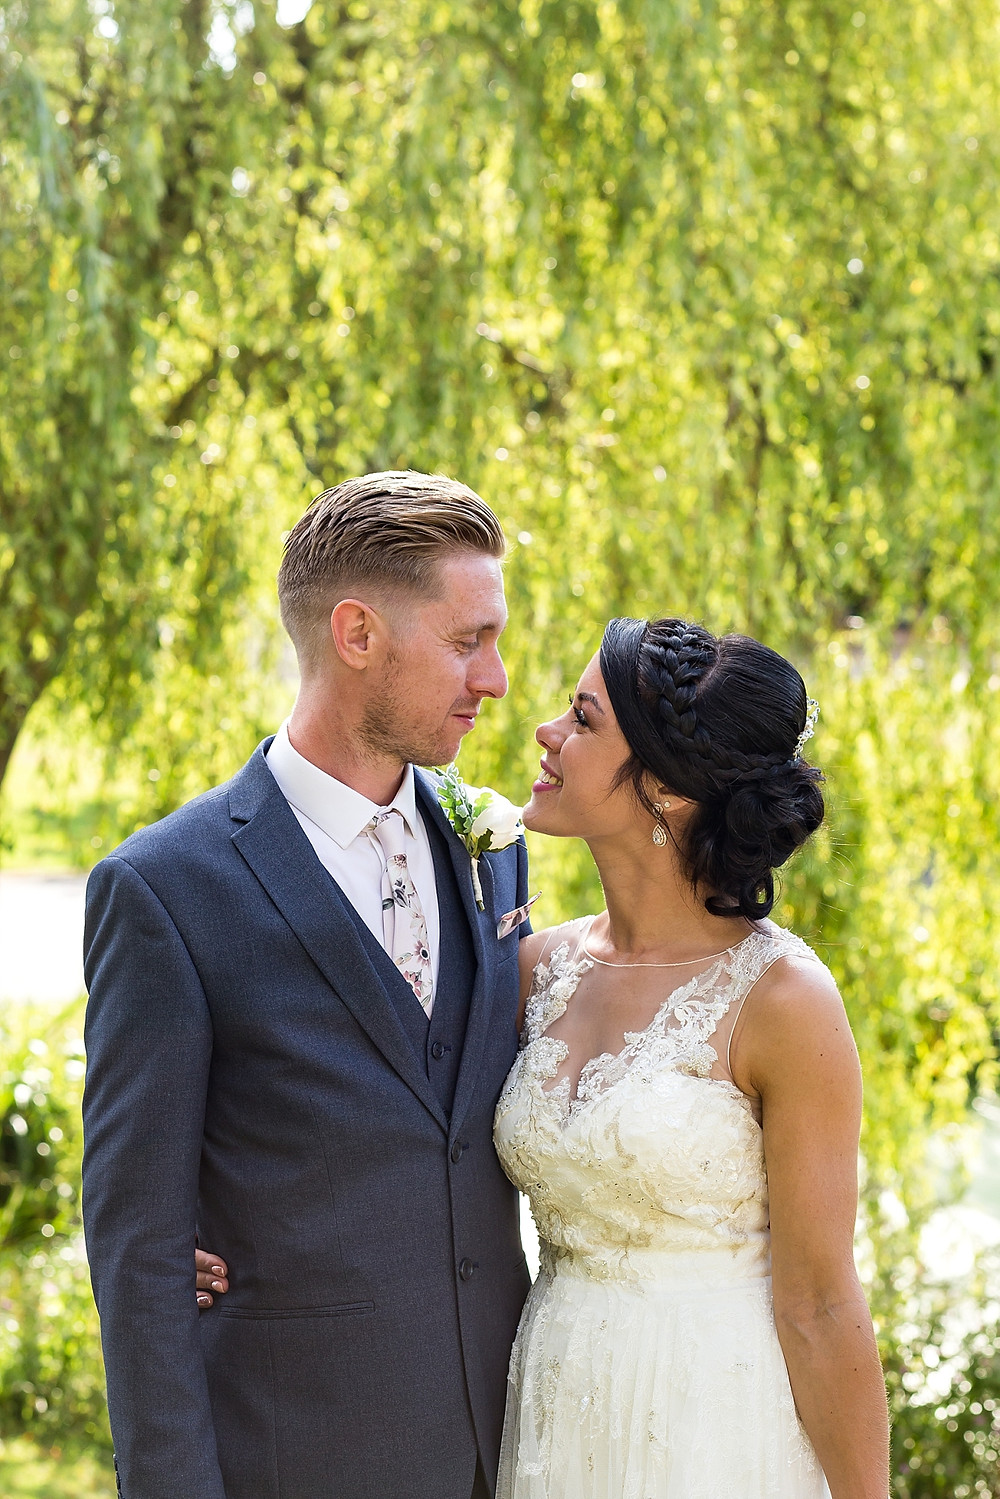 Bride & Groom at Windmill Village Hotel Coventry